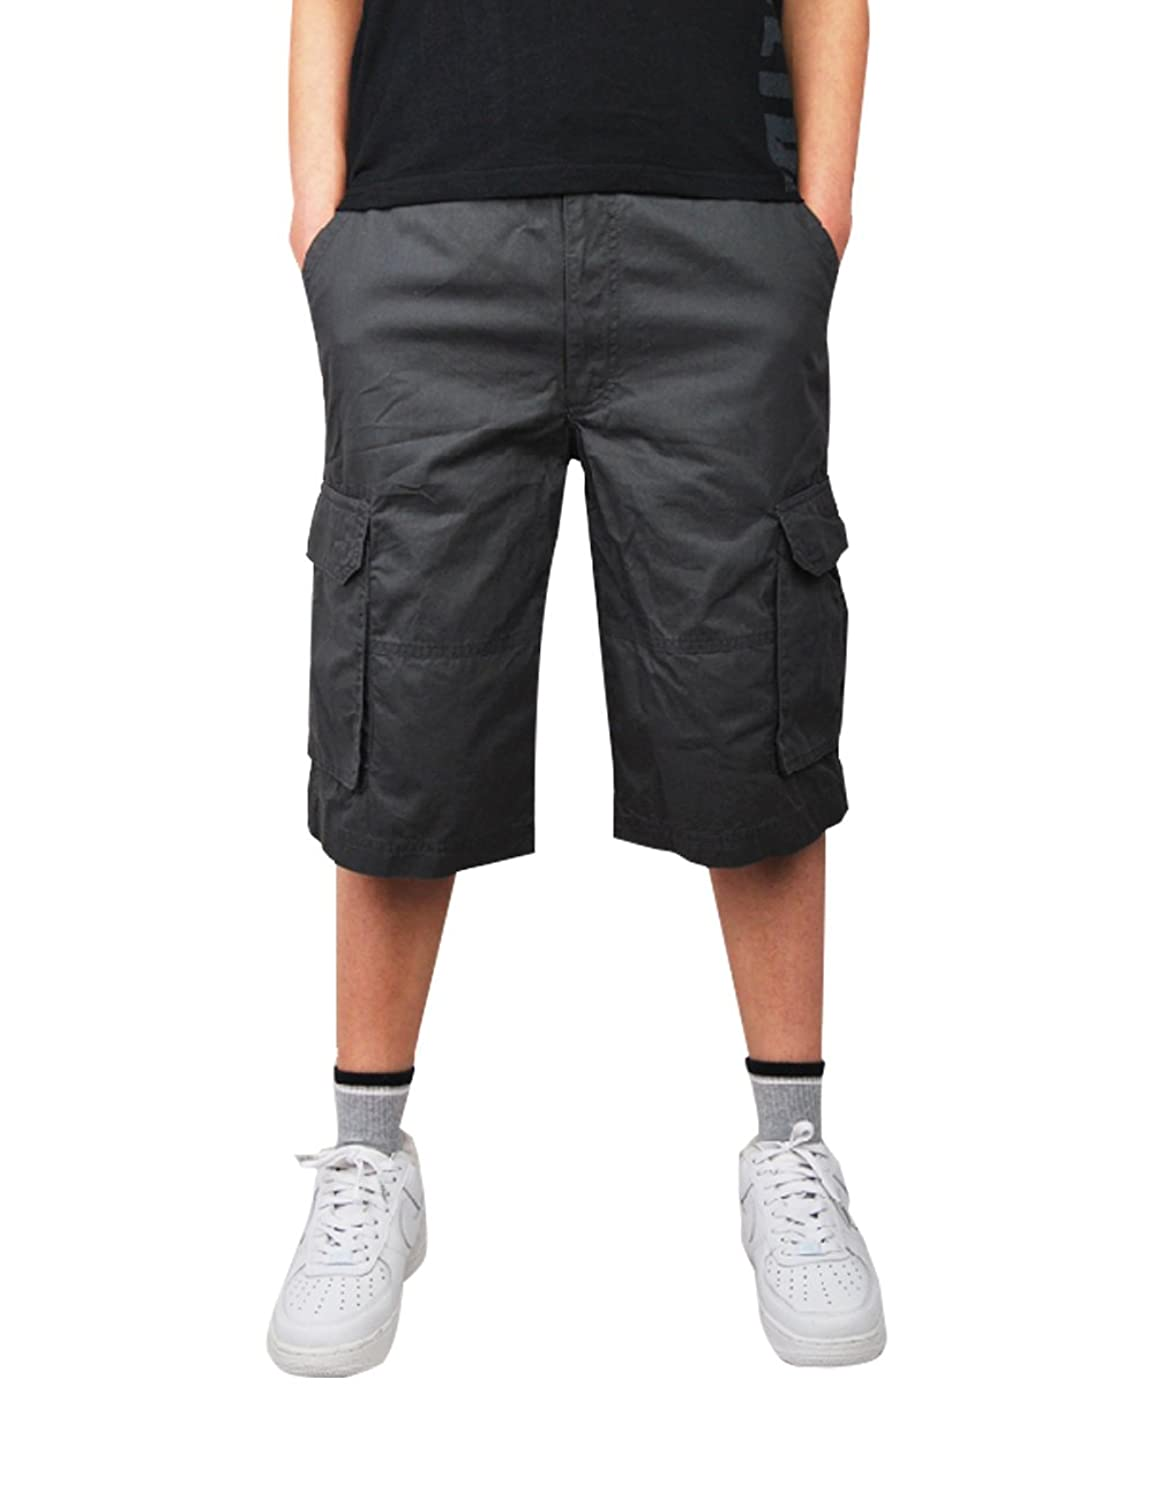 KINGDESON Mens Low-Rise Lace-Up Swimming Swimwear Brief Shorts Trunks Fifth Pants